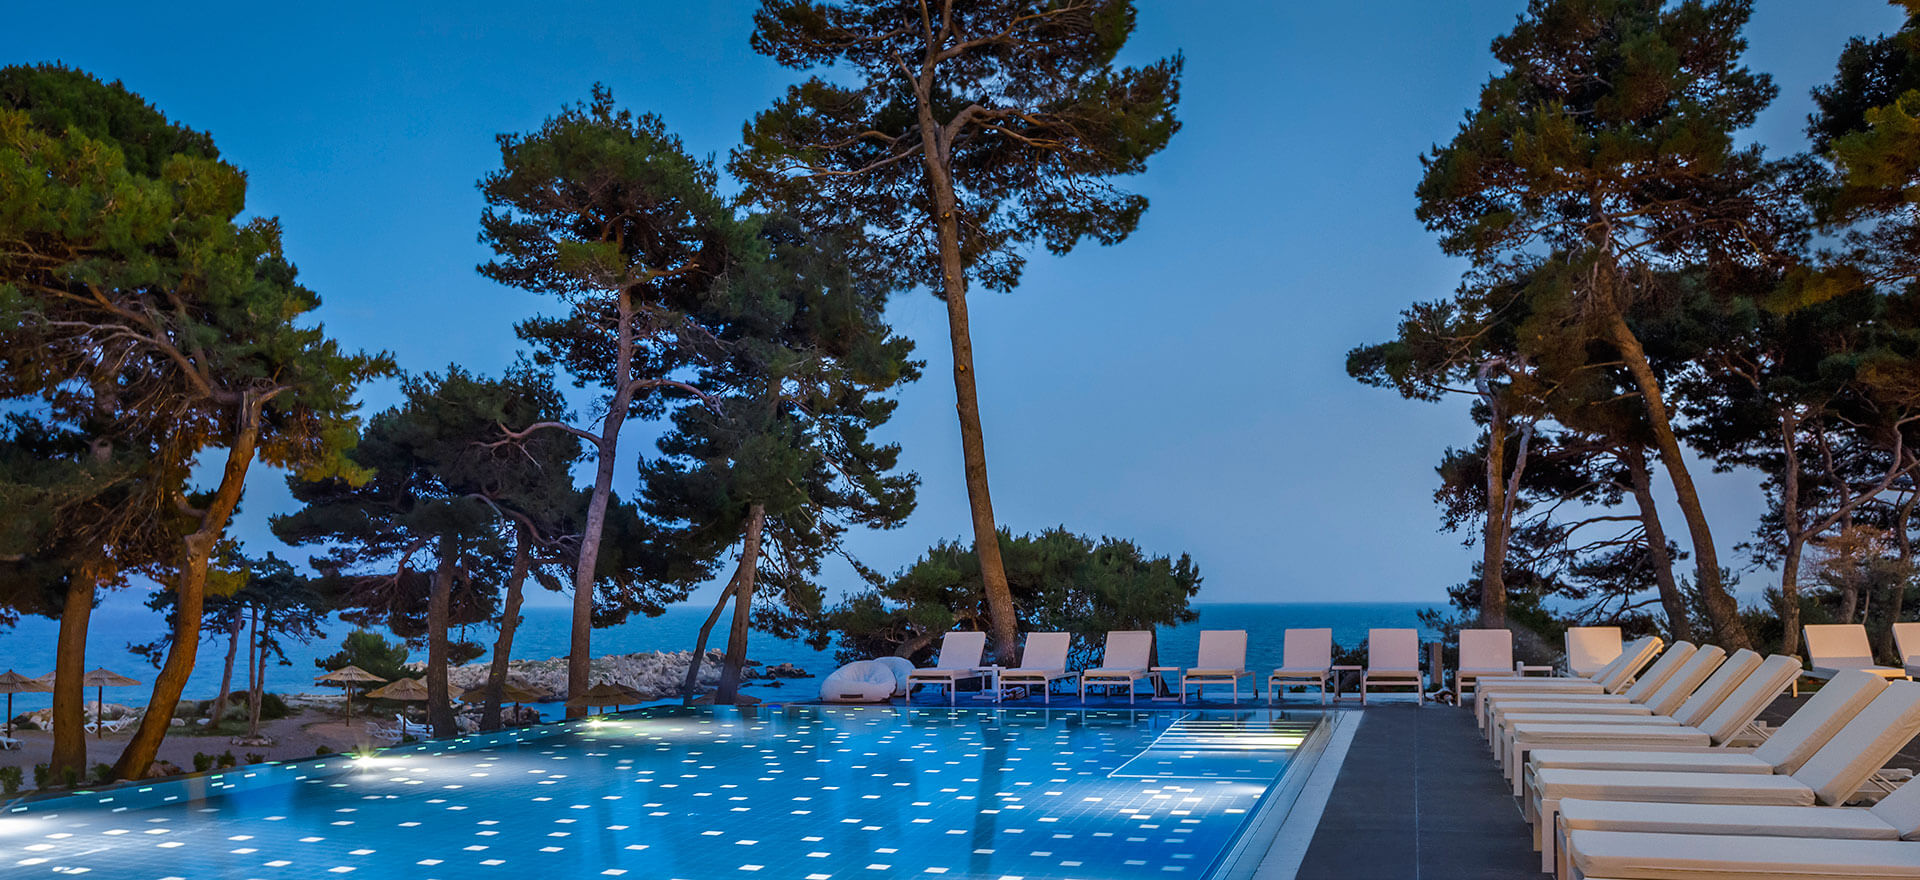 Tui Blue Carolina Resort By Valamar Island Of Rab Croatia